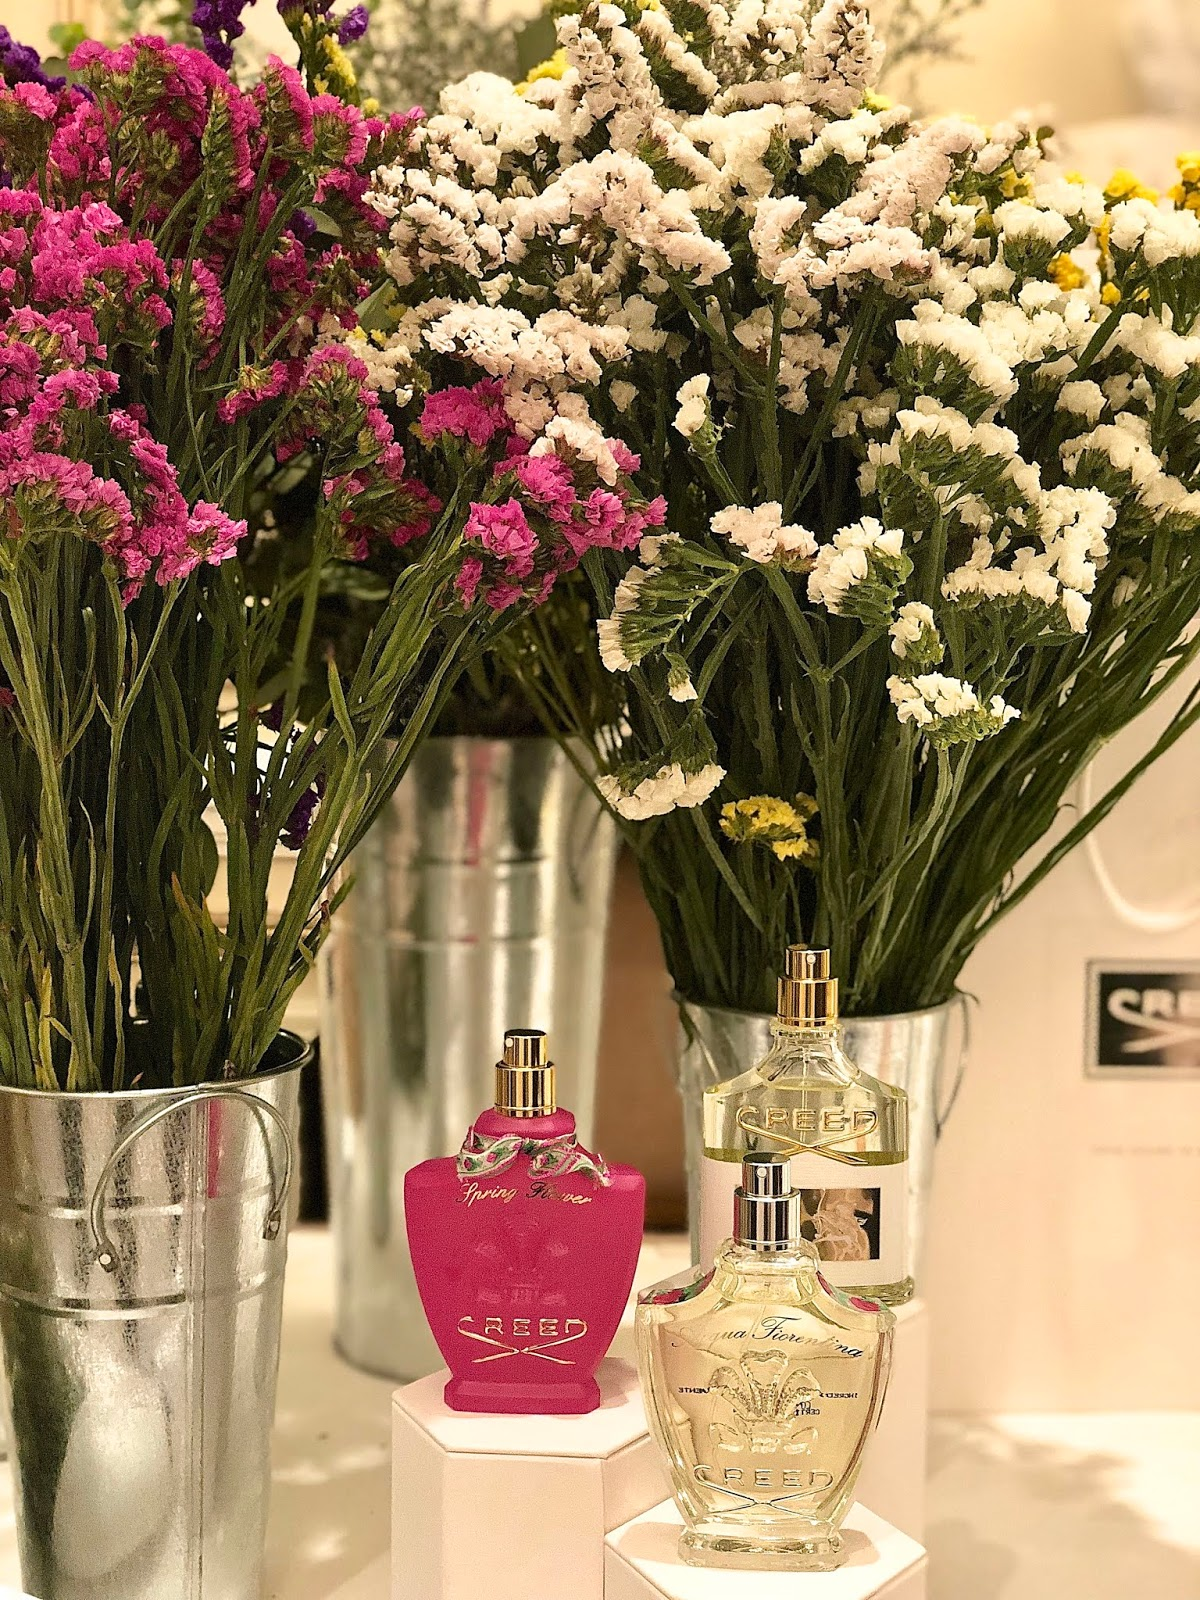 Fashionably Petite Beauty Event At Lotte New York Palace